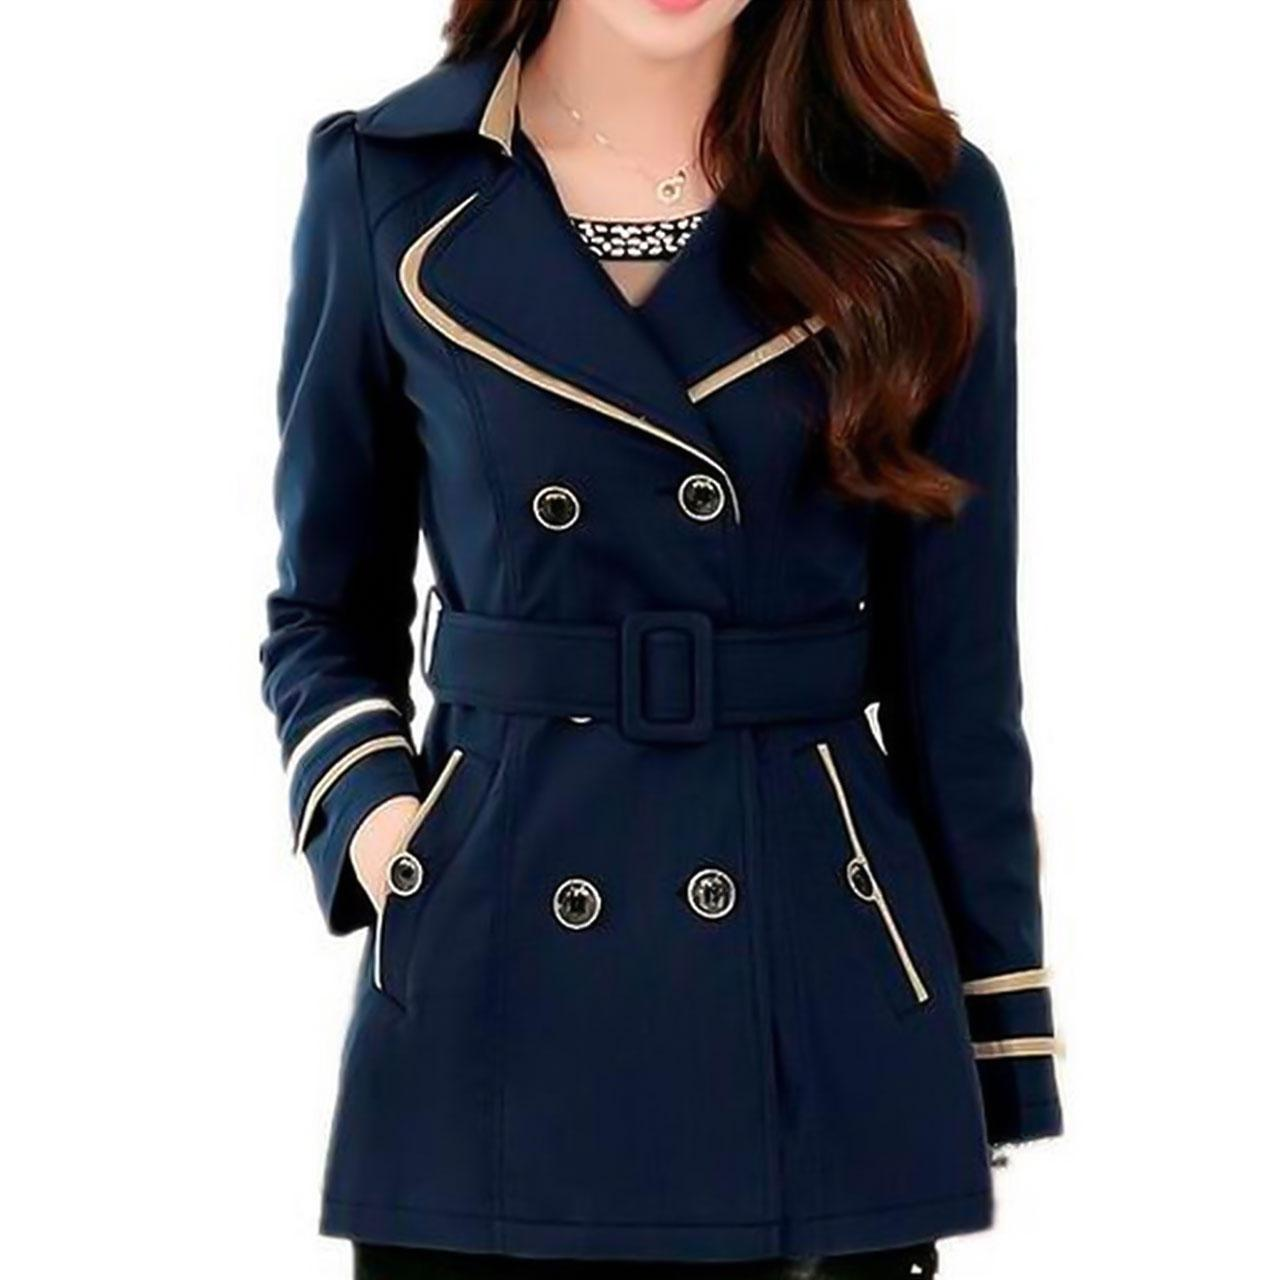 Women's Daily Spring Regular Trench Coat, Solid Colored Fold-over Collar Long Sleeve Polyester Patchwork Navy Blue